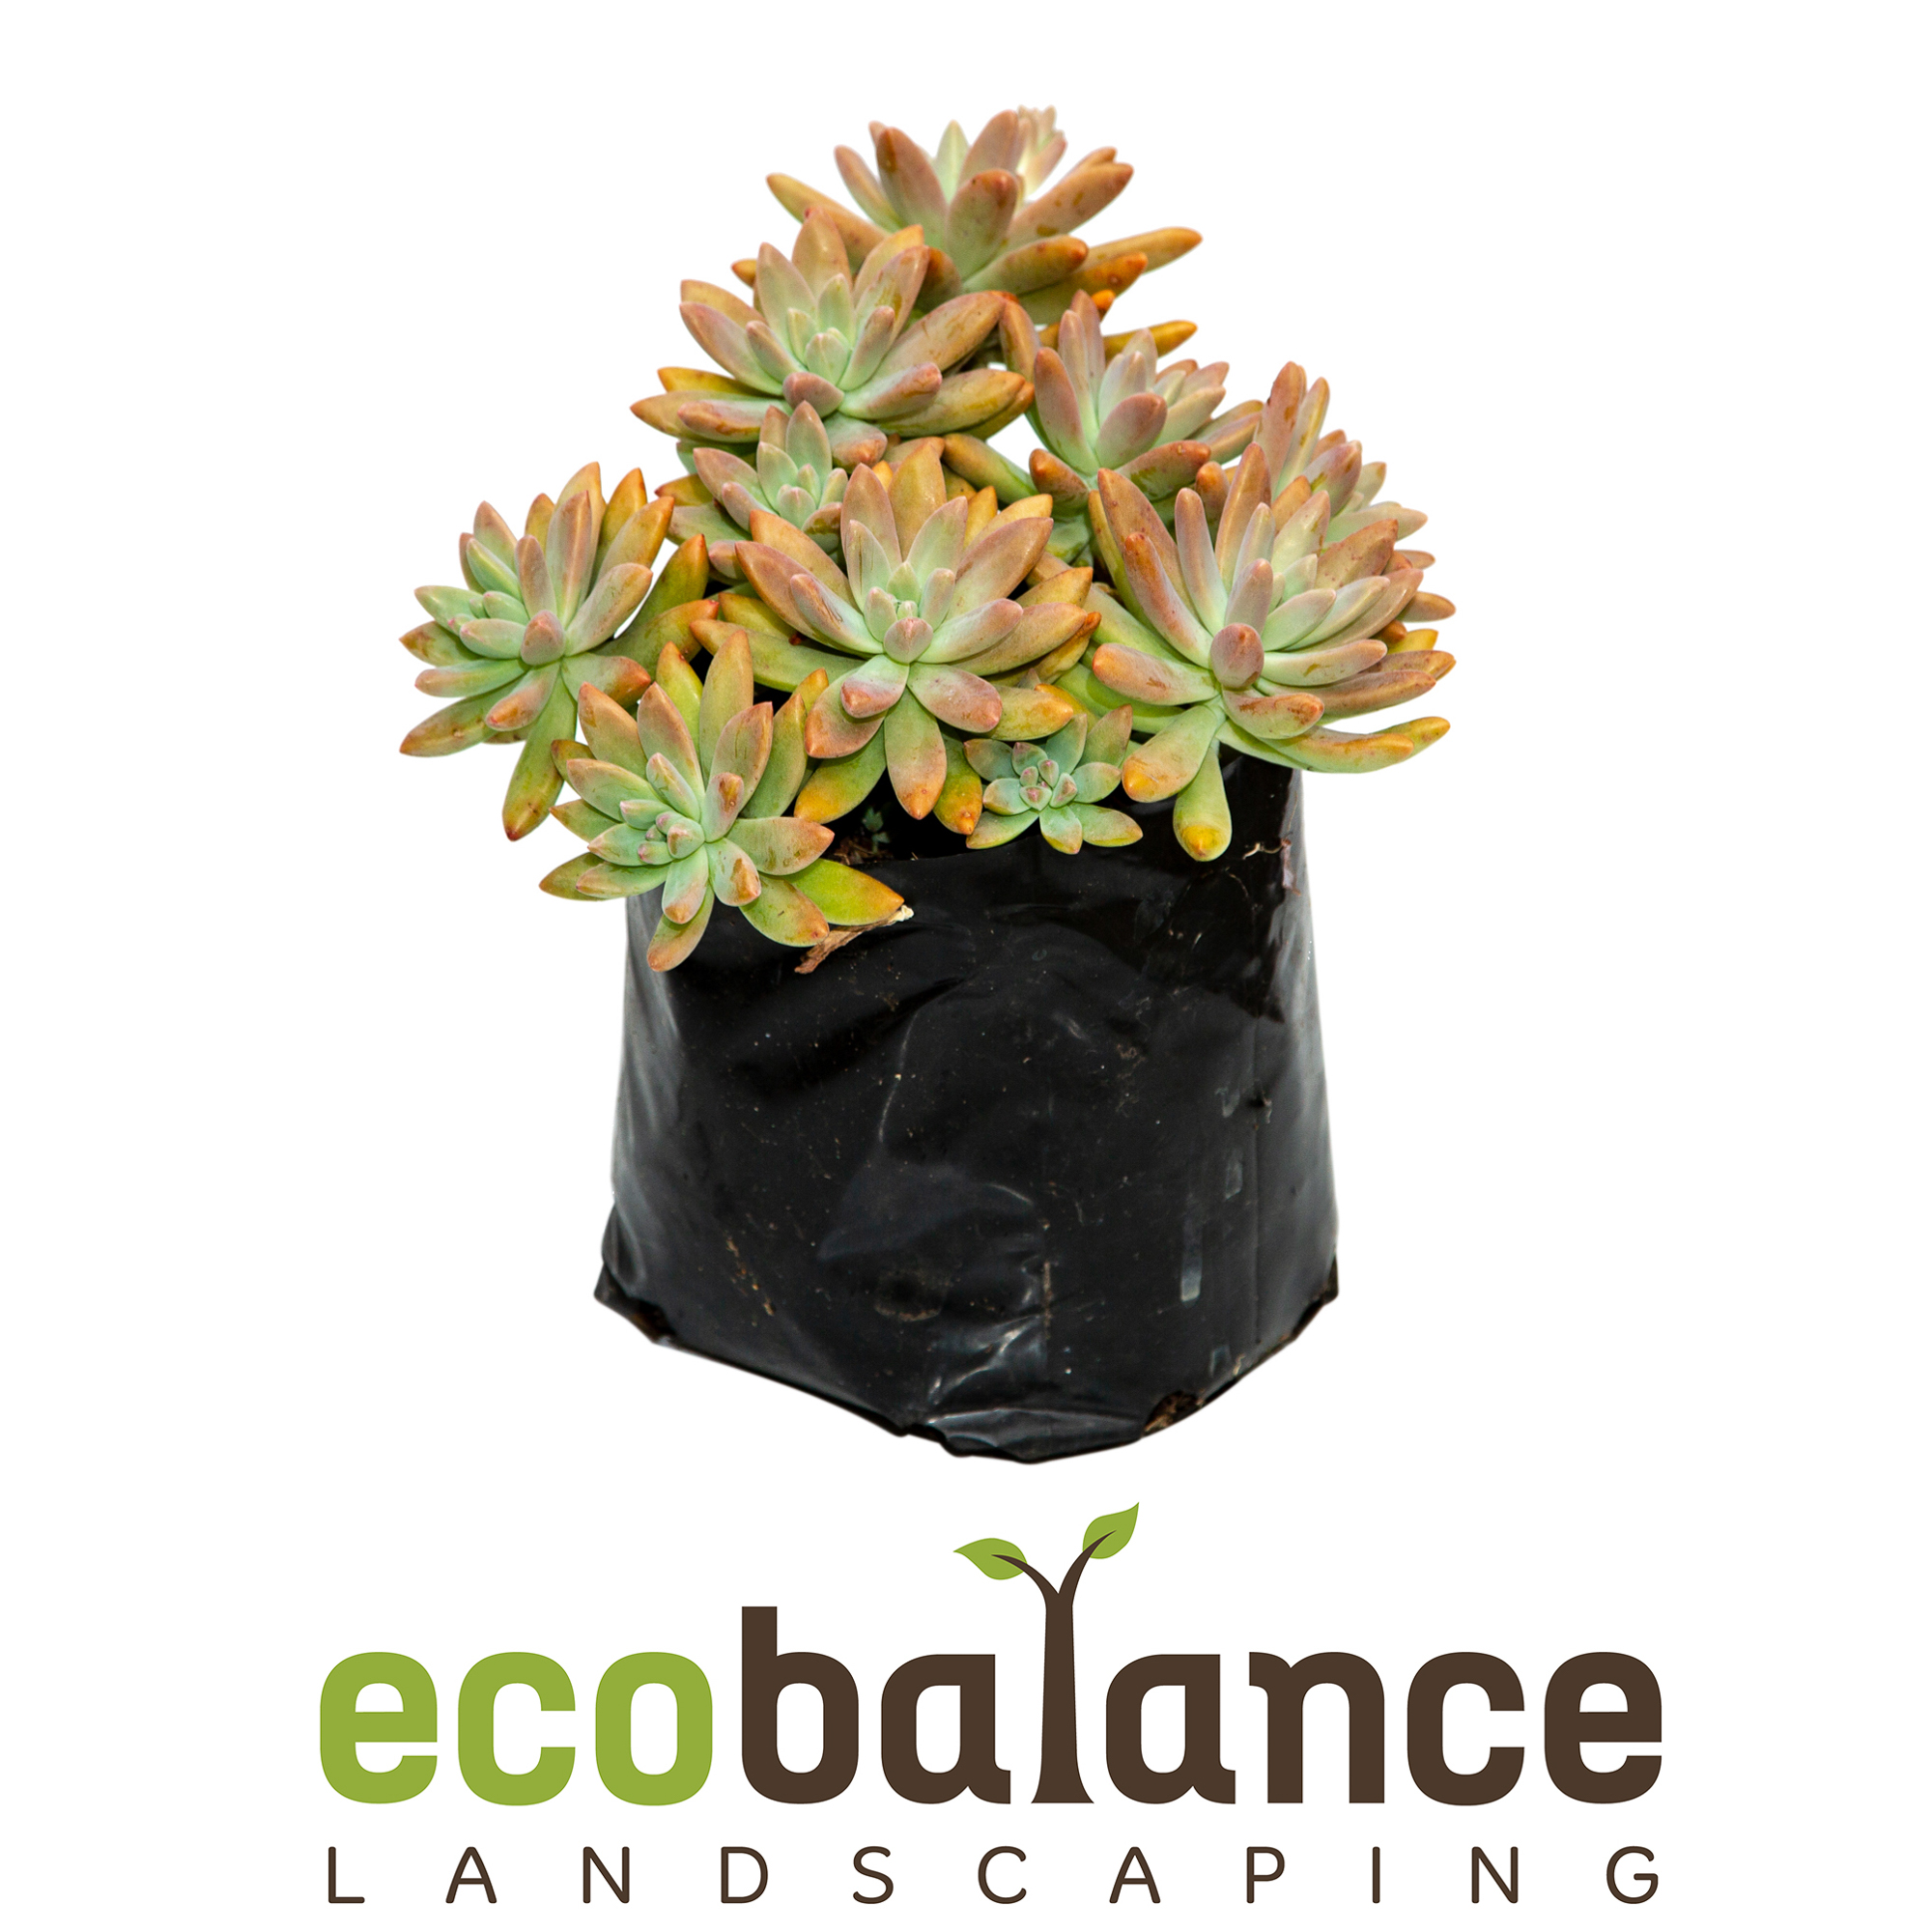 Sedum grey - Waterwise, resilient rock garden or container plantPRICE: R34.35 incl. VAT